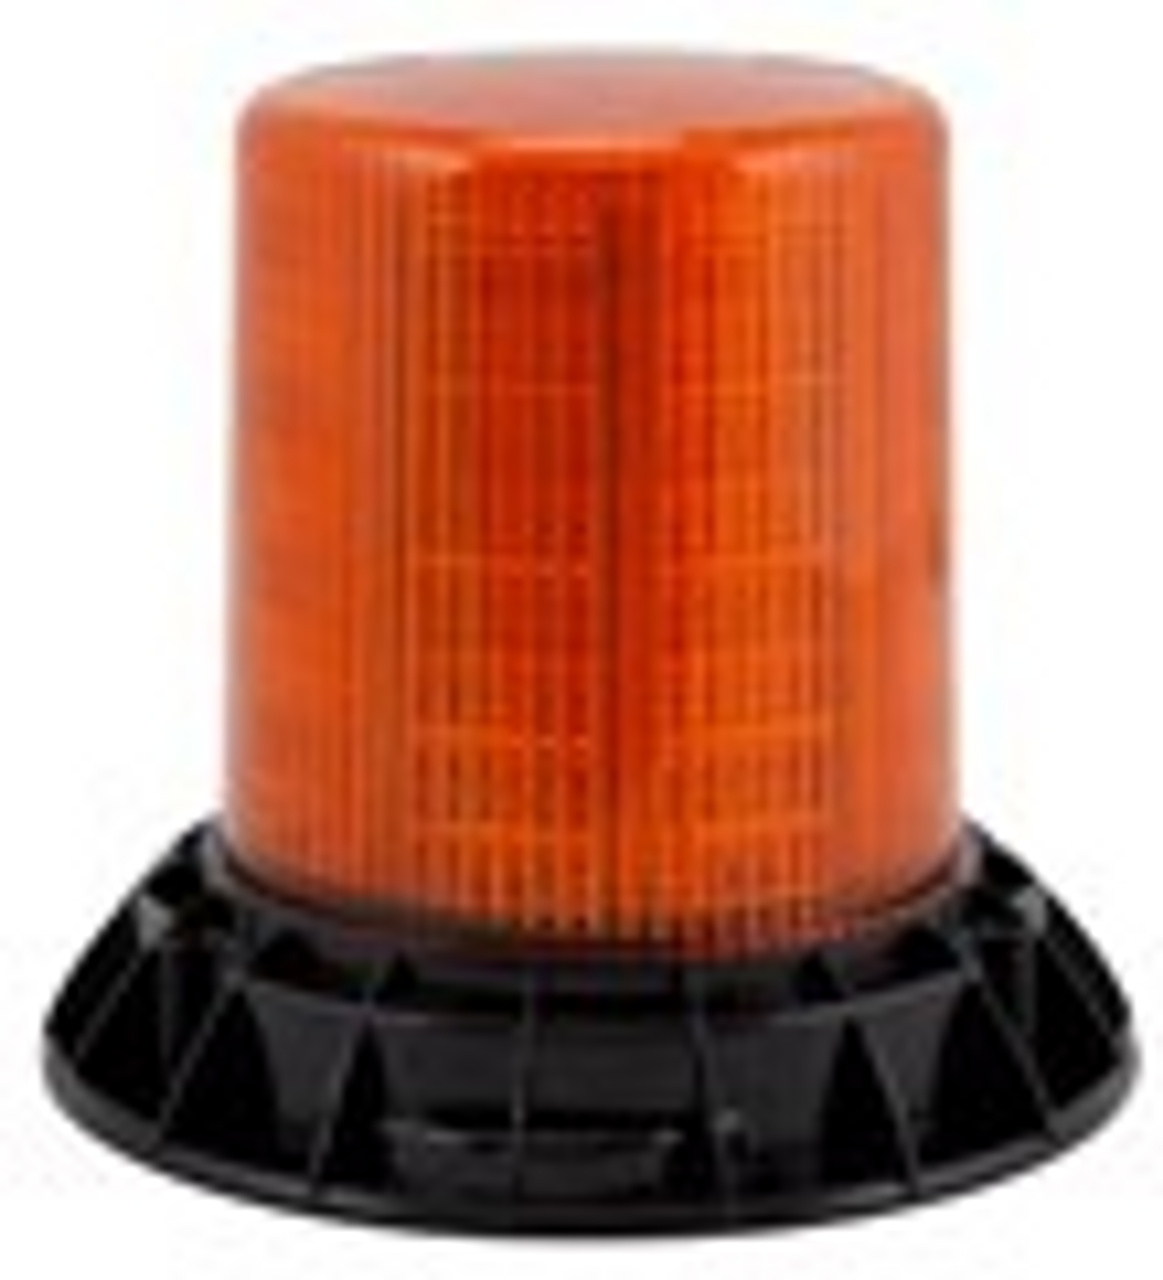 RB155Y - Amazing Amber LED Rotation Safety Beacon. Super Bright and Reliable. Amber LED's with Amber Lens. RB155Y. Roadvision. Ultimate LED.